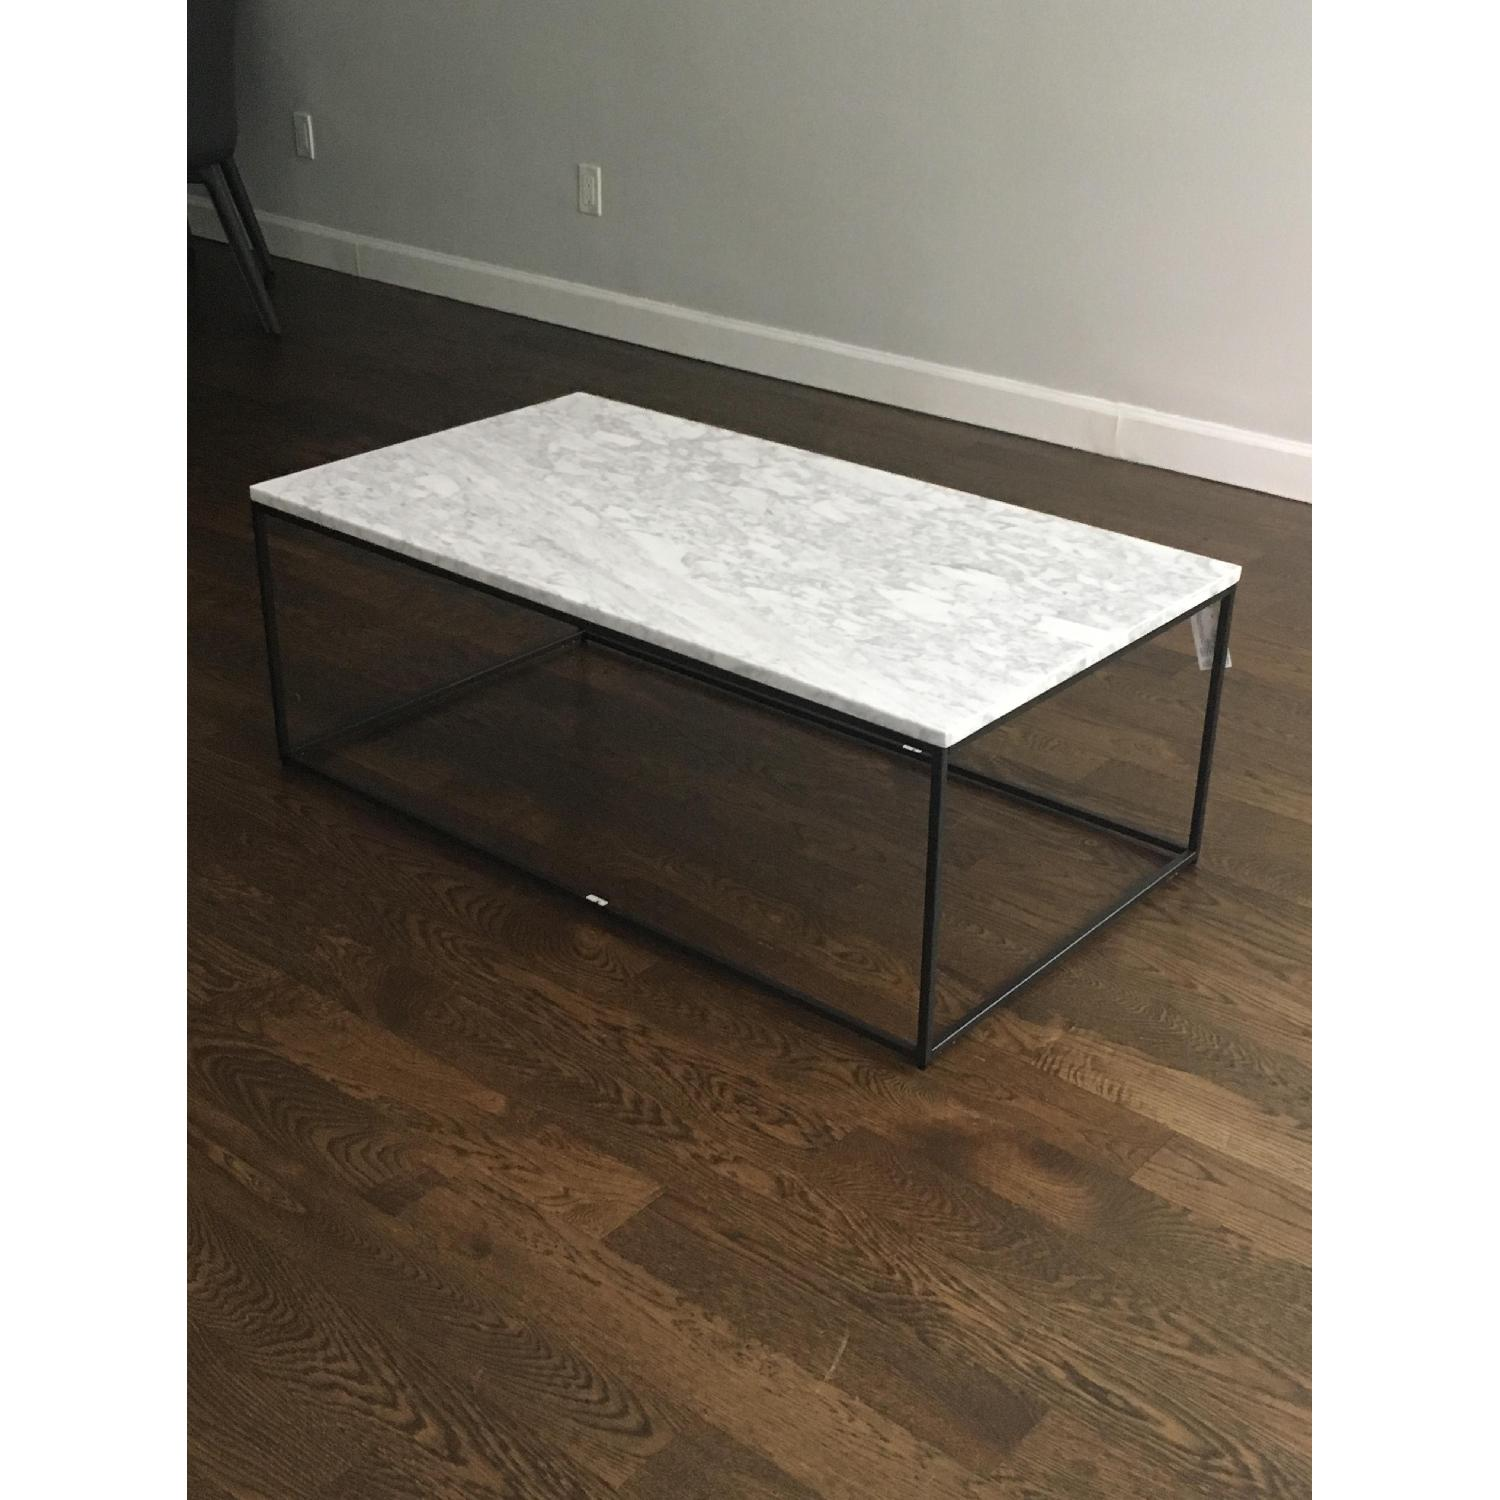 Super West Elm Streamline Coffee Table In White Marble Aptdeco Caraccident5 Cool Chair Designs And Ideas Caraccident5Info